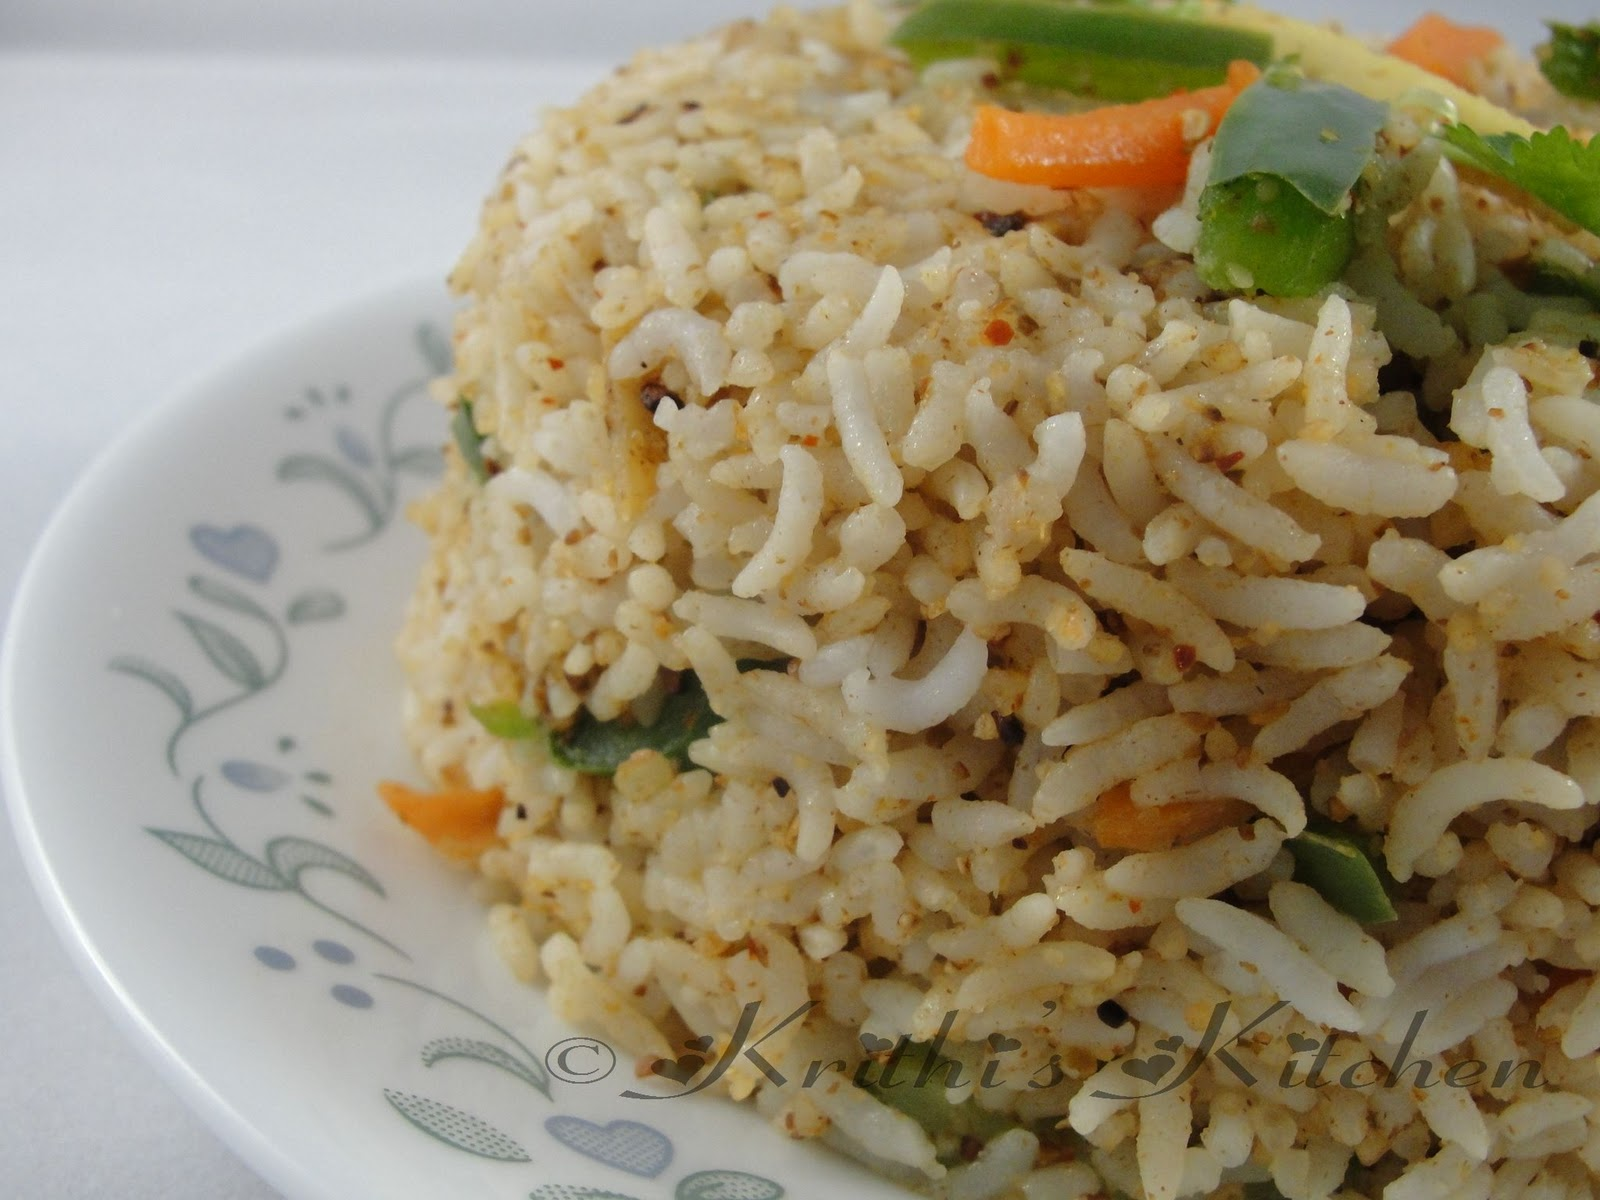 Krithi S Kitchen Nutty Vegetable Masala Rice Indian Rice Recipes